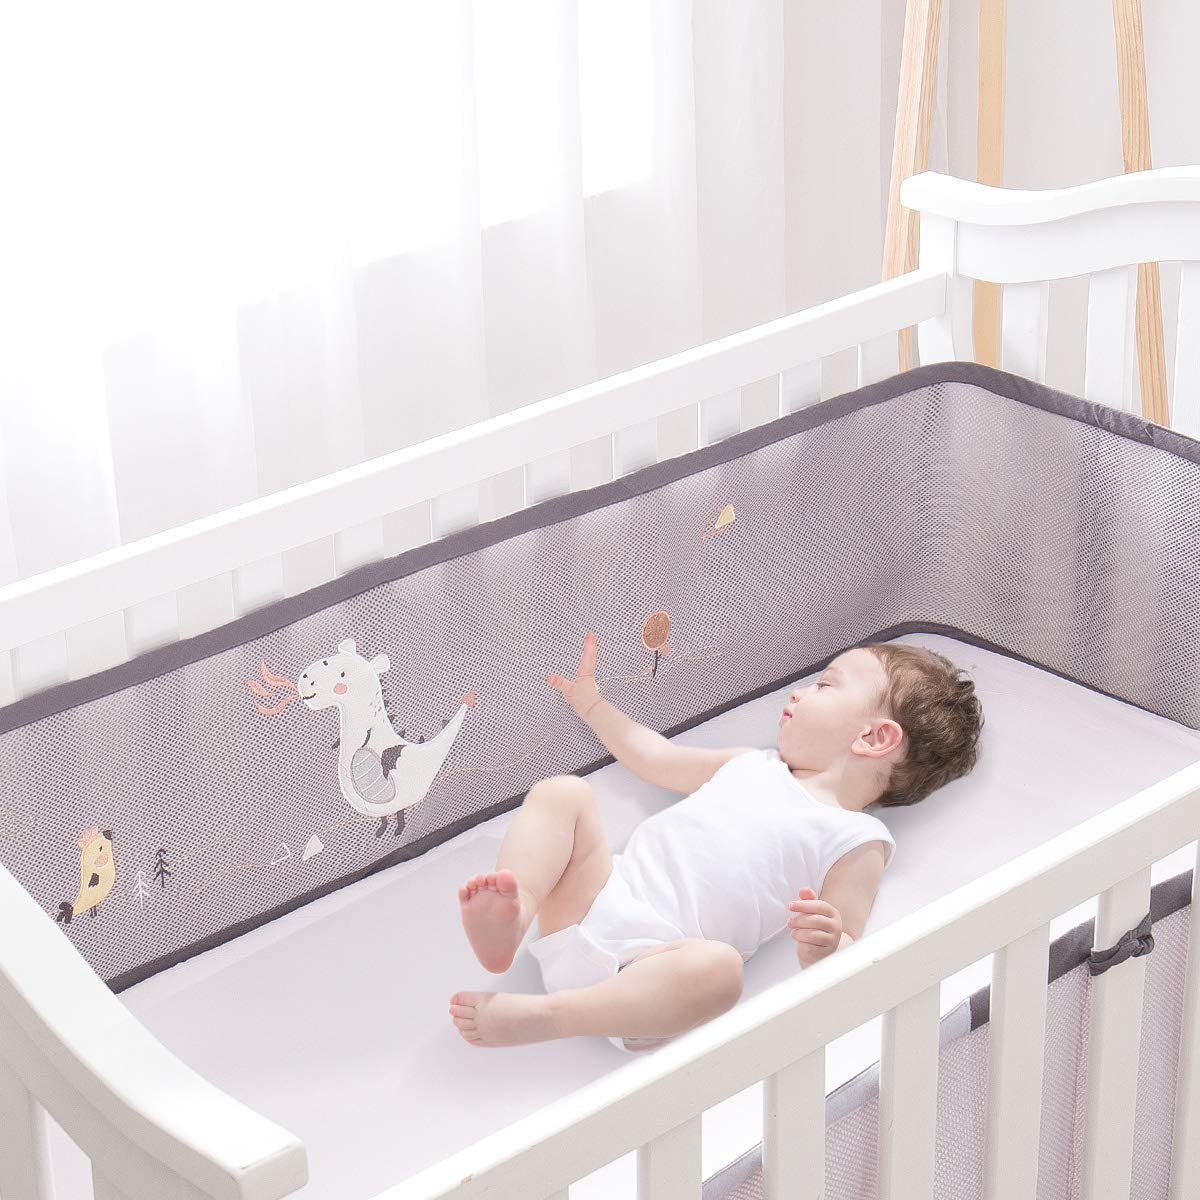 KIDDA Breathable Baby Crib Mesh Bumper Fits 4 Sided Slatted & Solid end Cribs Gray with Applique Animals Dinosaur